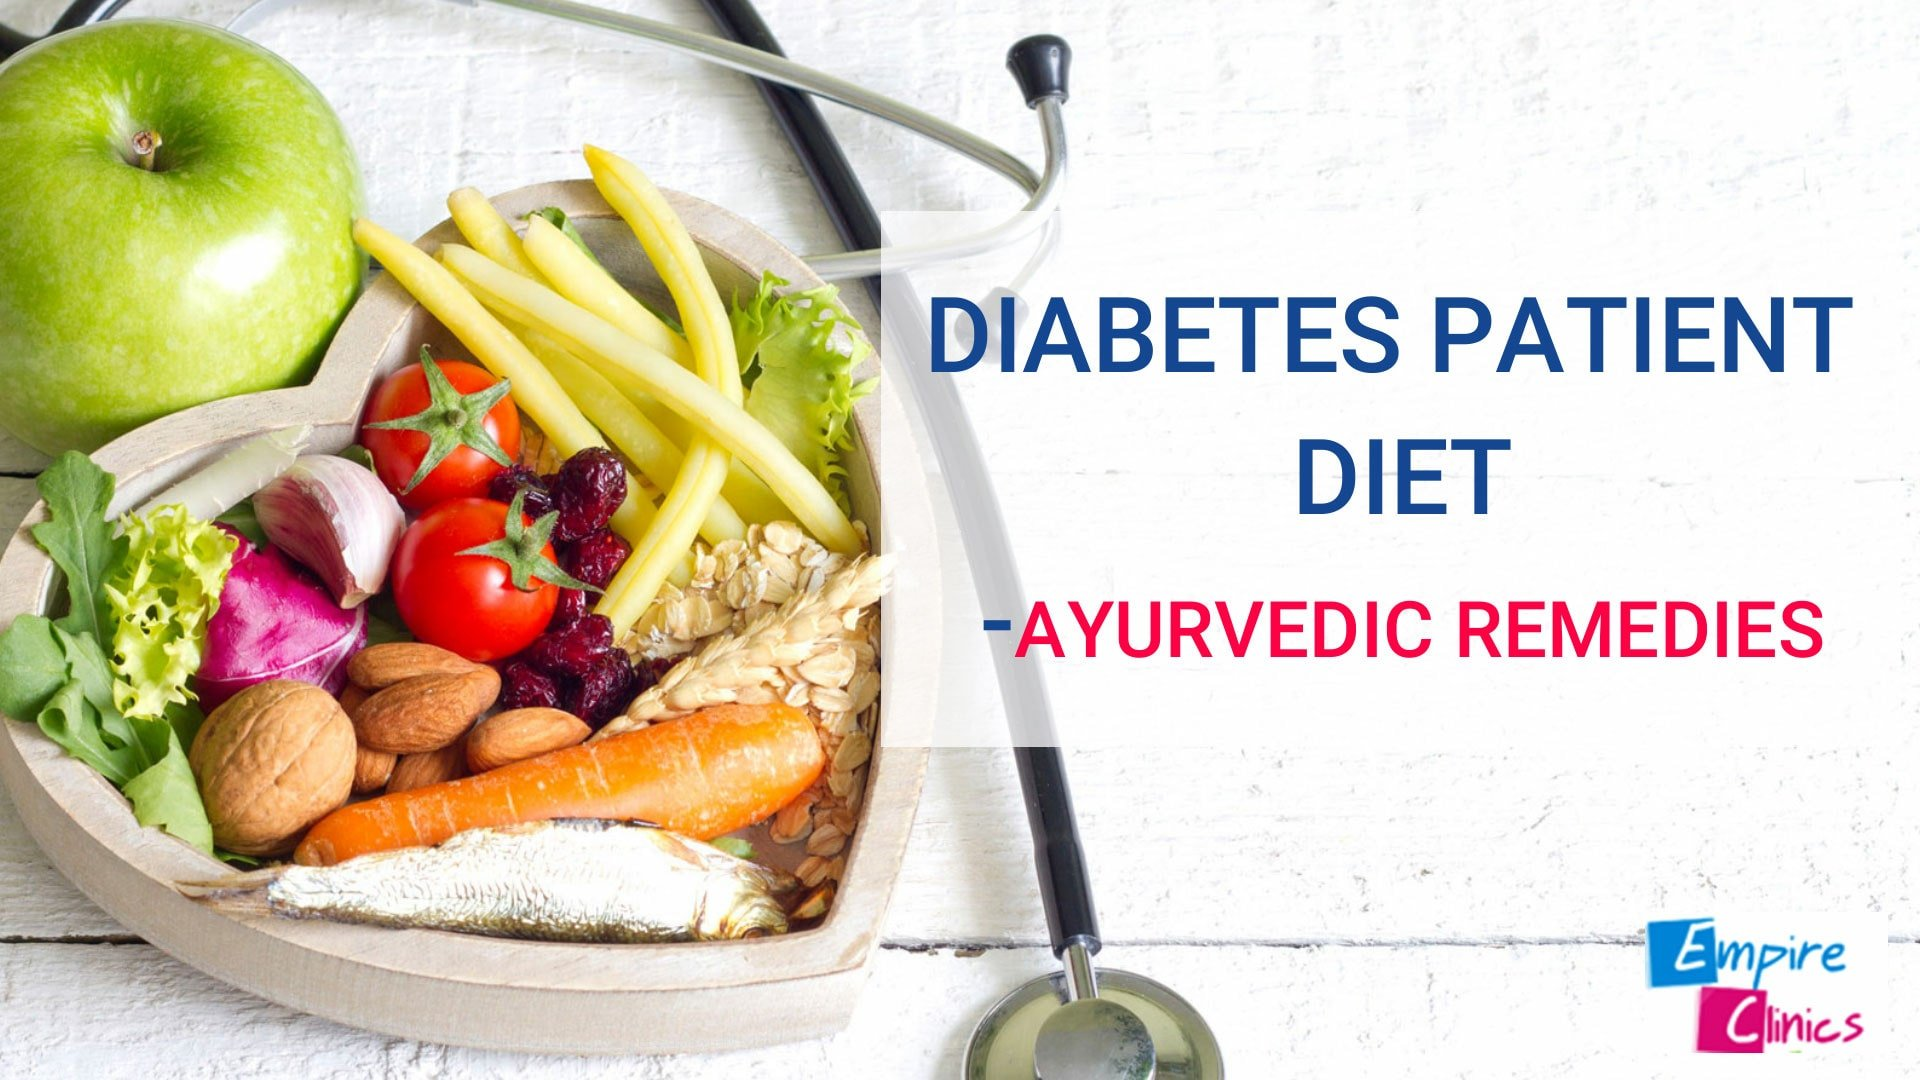 Diabetes Patient Diet and Preventive Measures – Ayurvedic Remedies